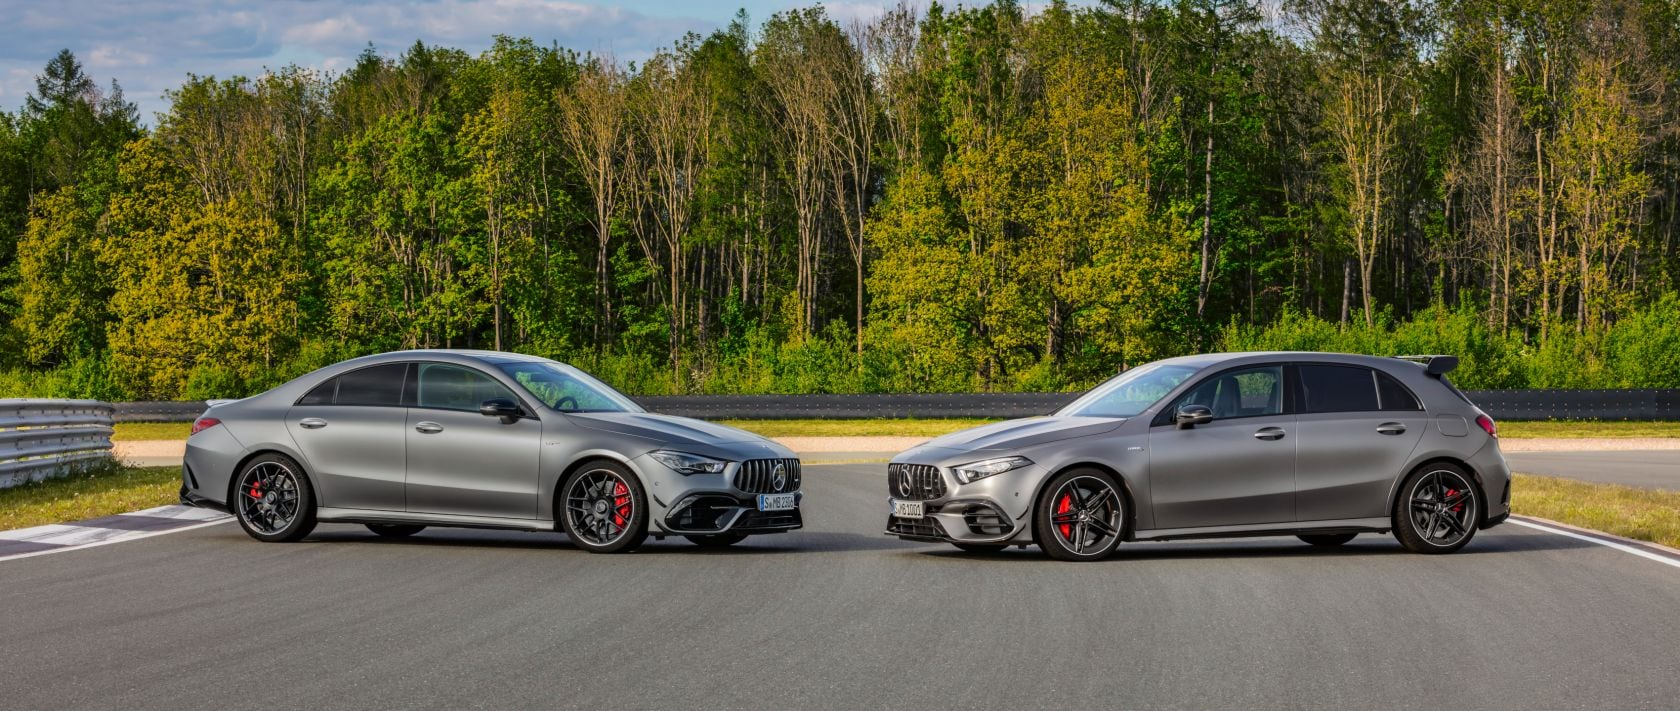 The new 2020 Mercedes-AMG A 45 4MATIC+ (W 177) and CLA 45 4MATIC+ (C 118) in designo mountain grey magno face each other.